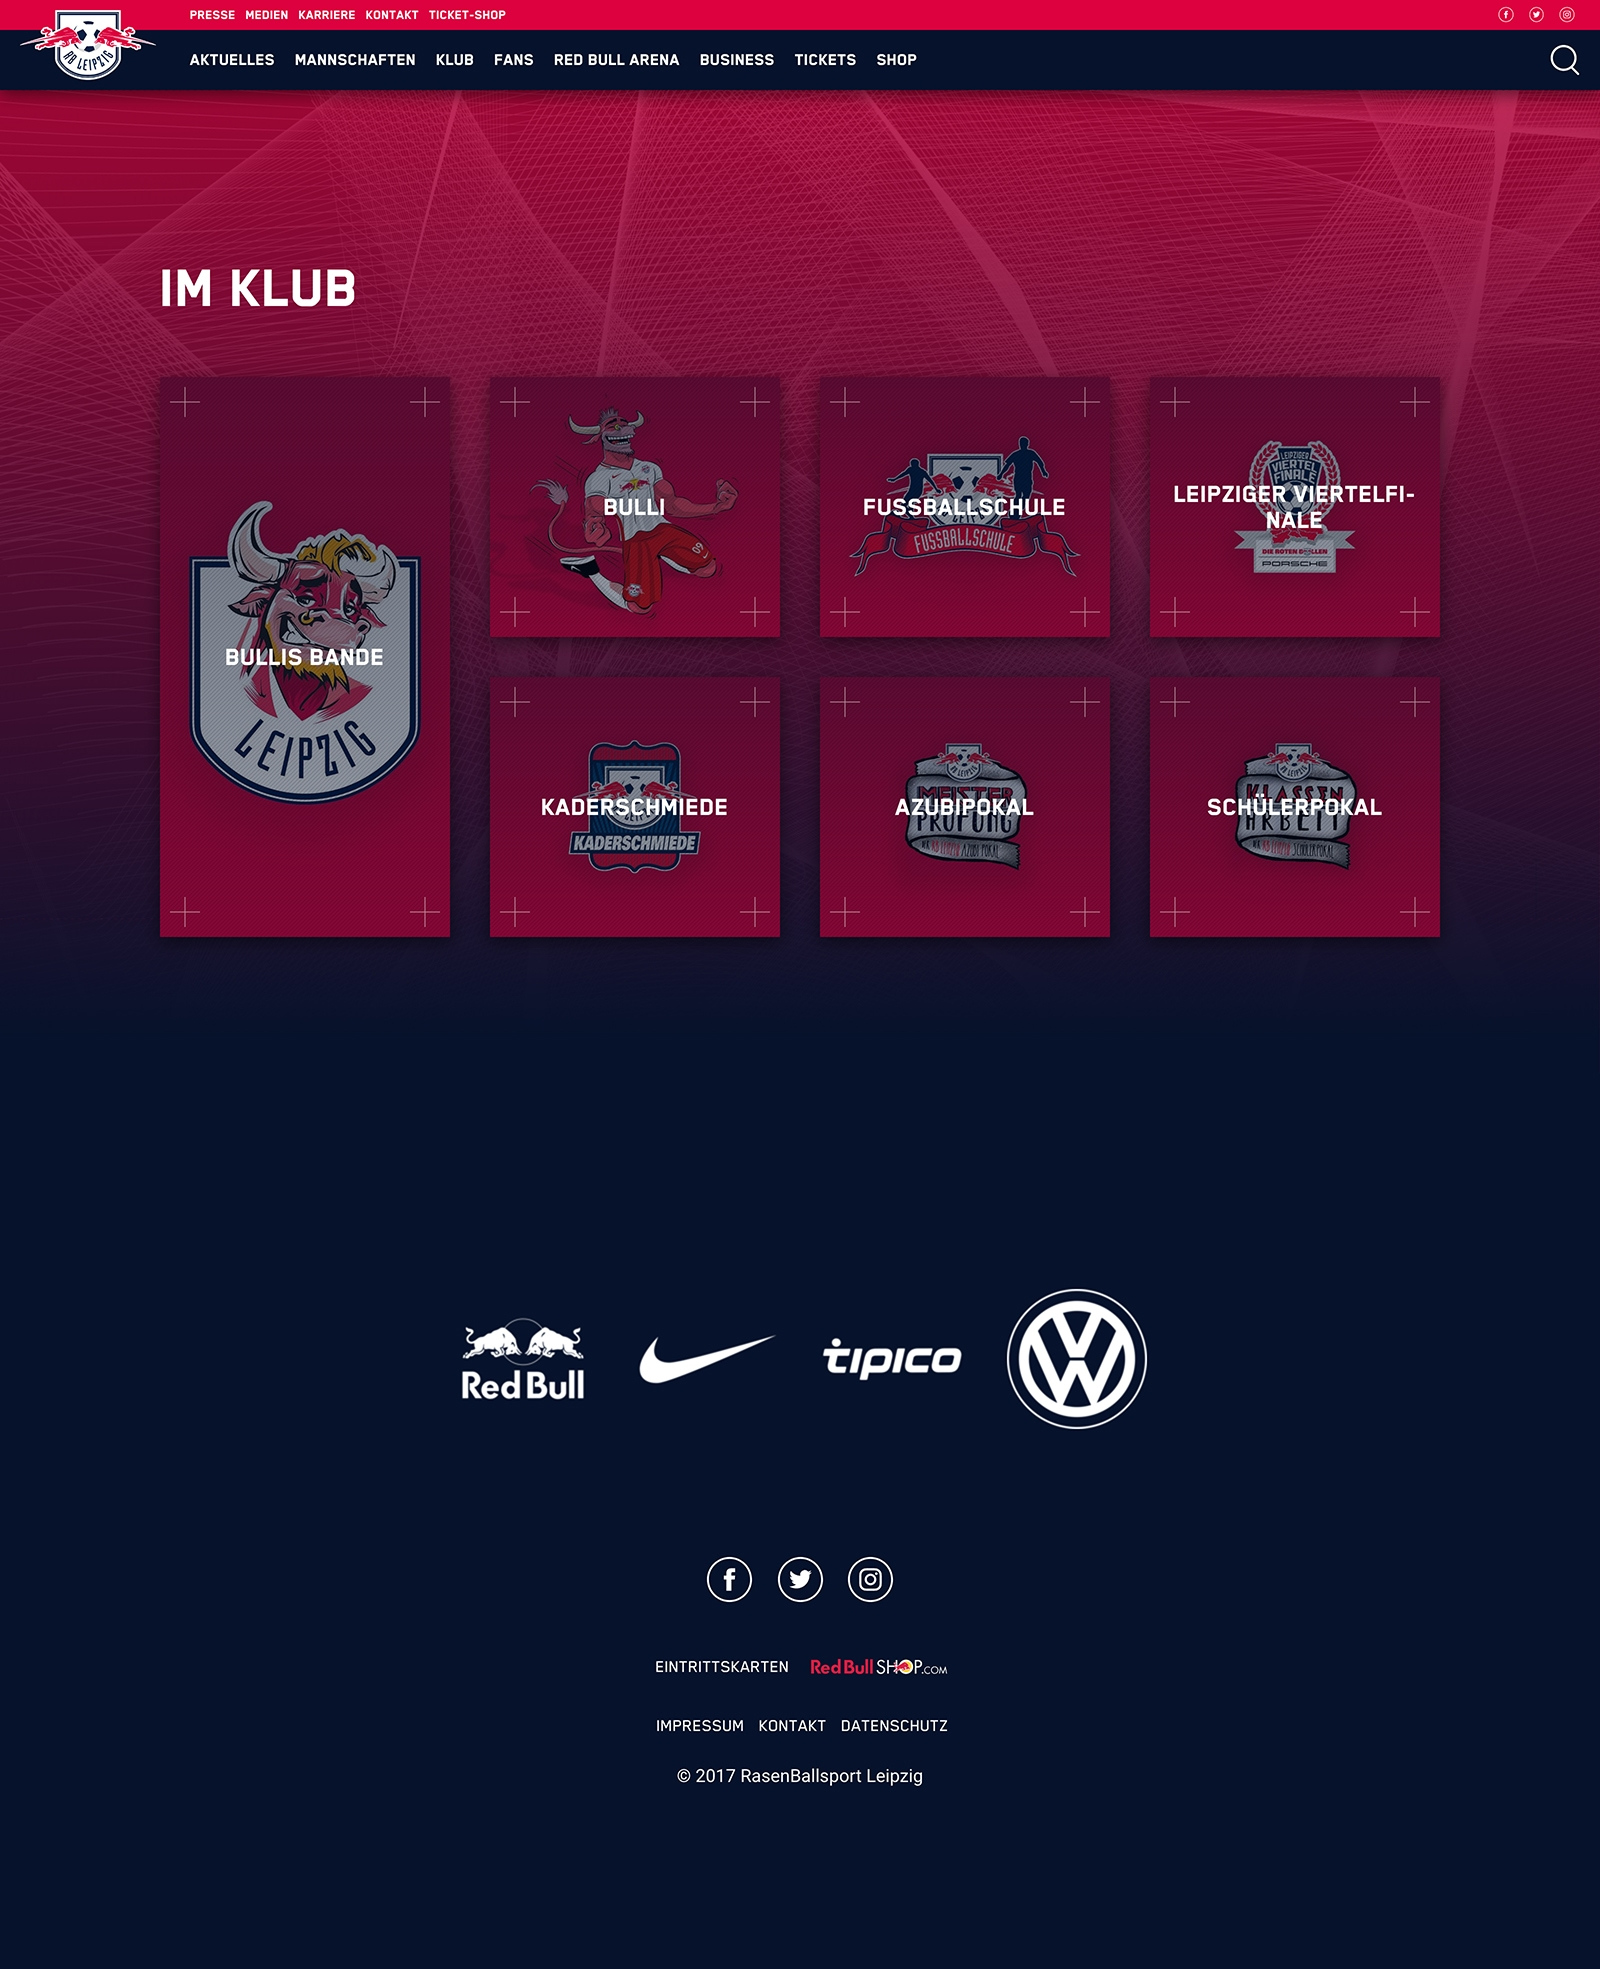 Rb Leipzig Website Relaunch 2017 Image 17